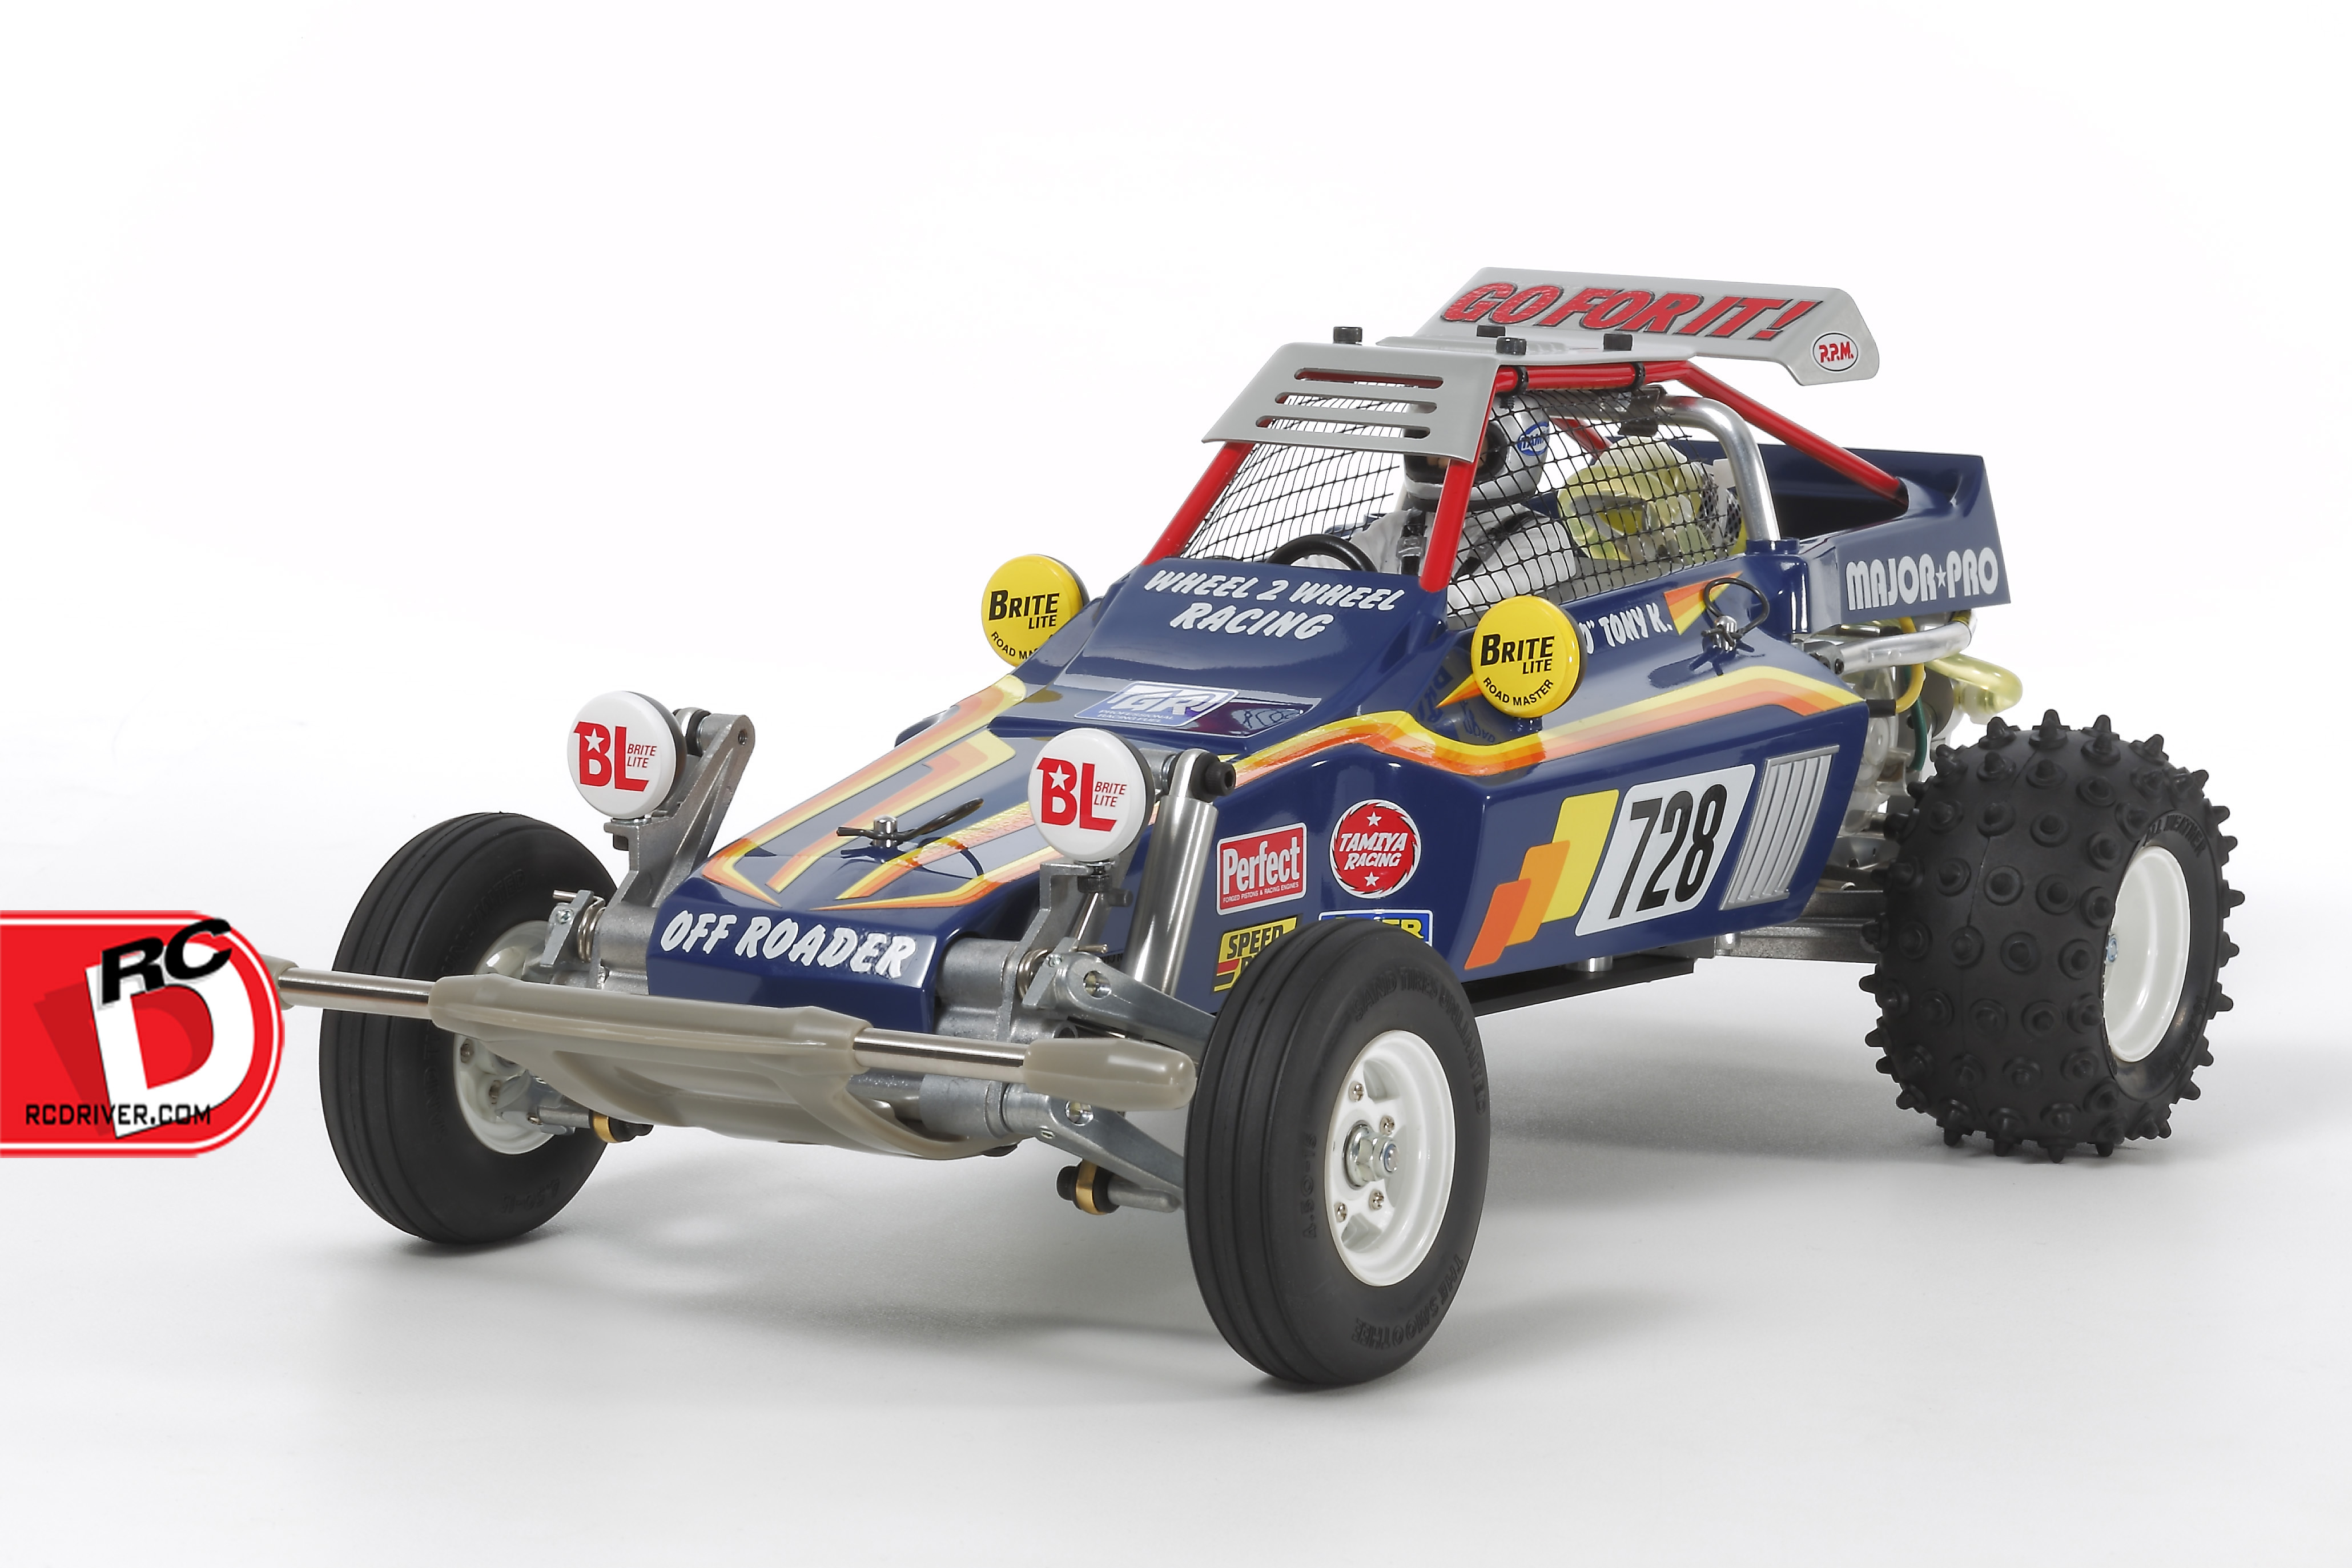 pro rc car driver with Tamiya Fighting Buggy 2014 Limited Edition on Tamiya Fighting Buggy 2014 Limited Edition additionally Interco Tsl Sx Super Sw er Xl G8 Rock Terrain Truck Tires Mounted Pro Line in addition Pro Line Ford F 150 Raptor Svt Clear Body For The Yeti moreover Protoform F1 Fifteen Clear Body also Lamborghini Gallardo Super Trofeo Race Car Color Change.